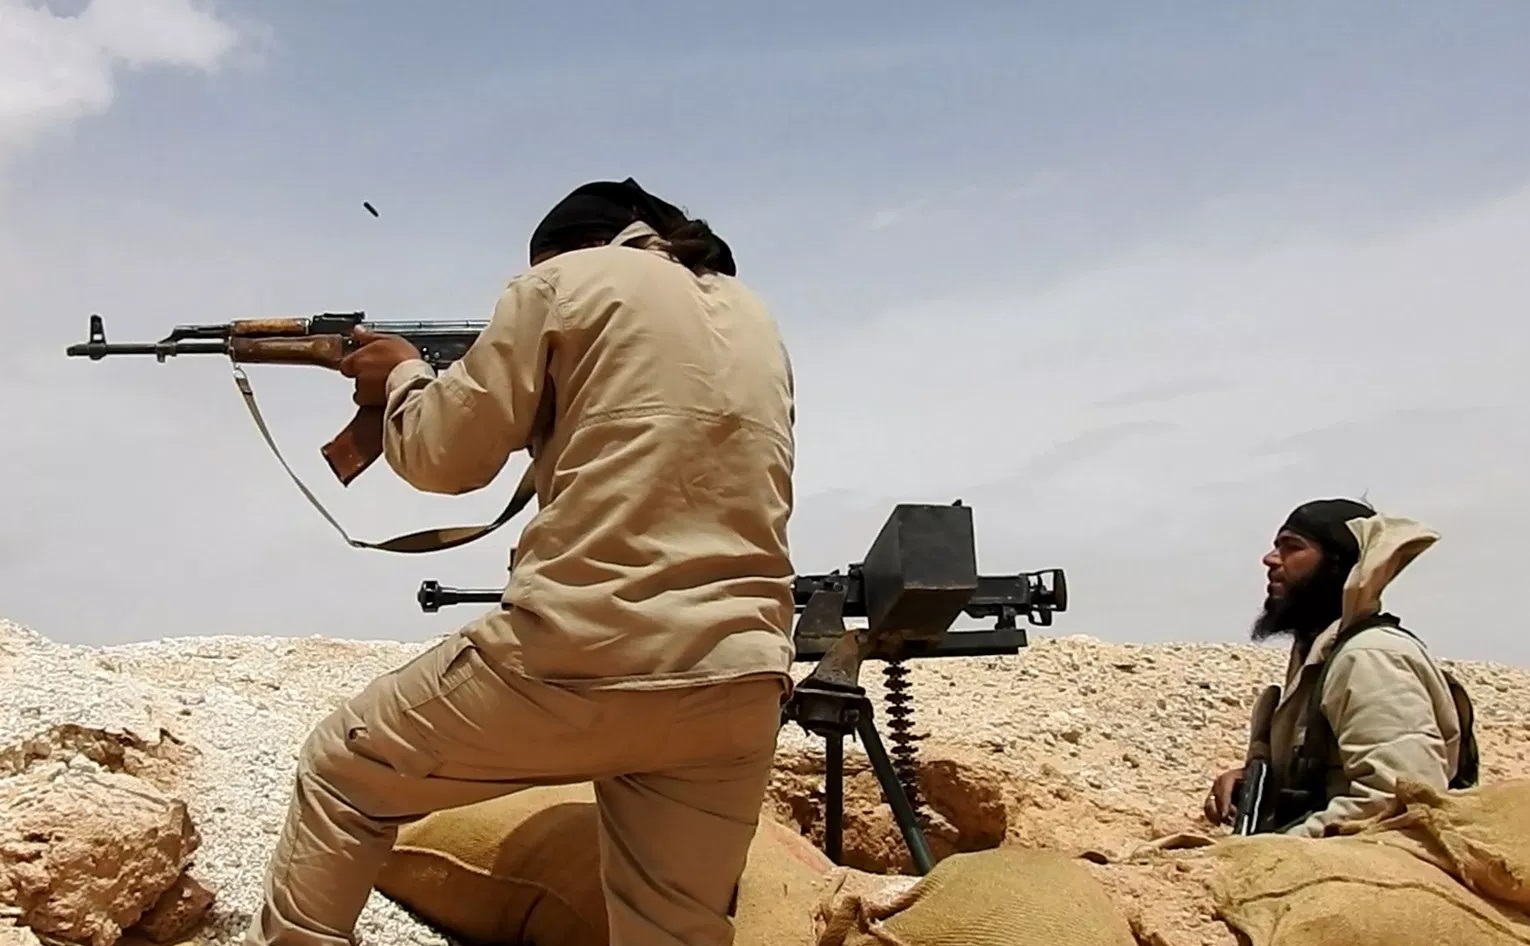 ISIS Claims Its Members Killed More Than Dozen Syrian Soldiers, Officers In Eastern Homs